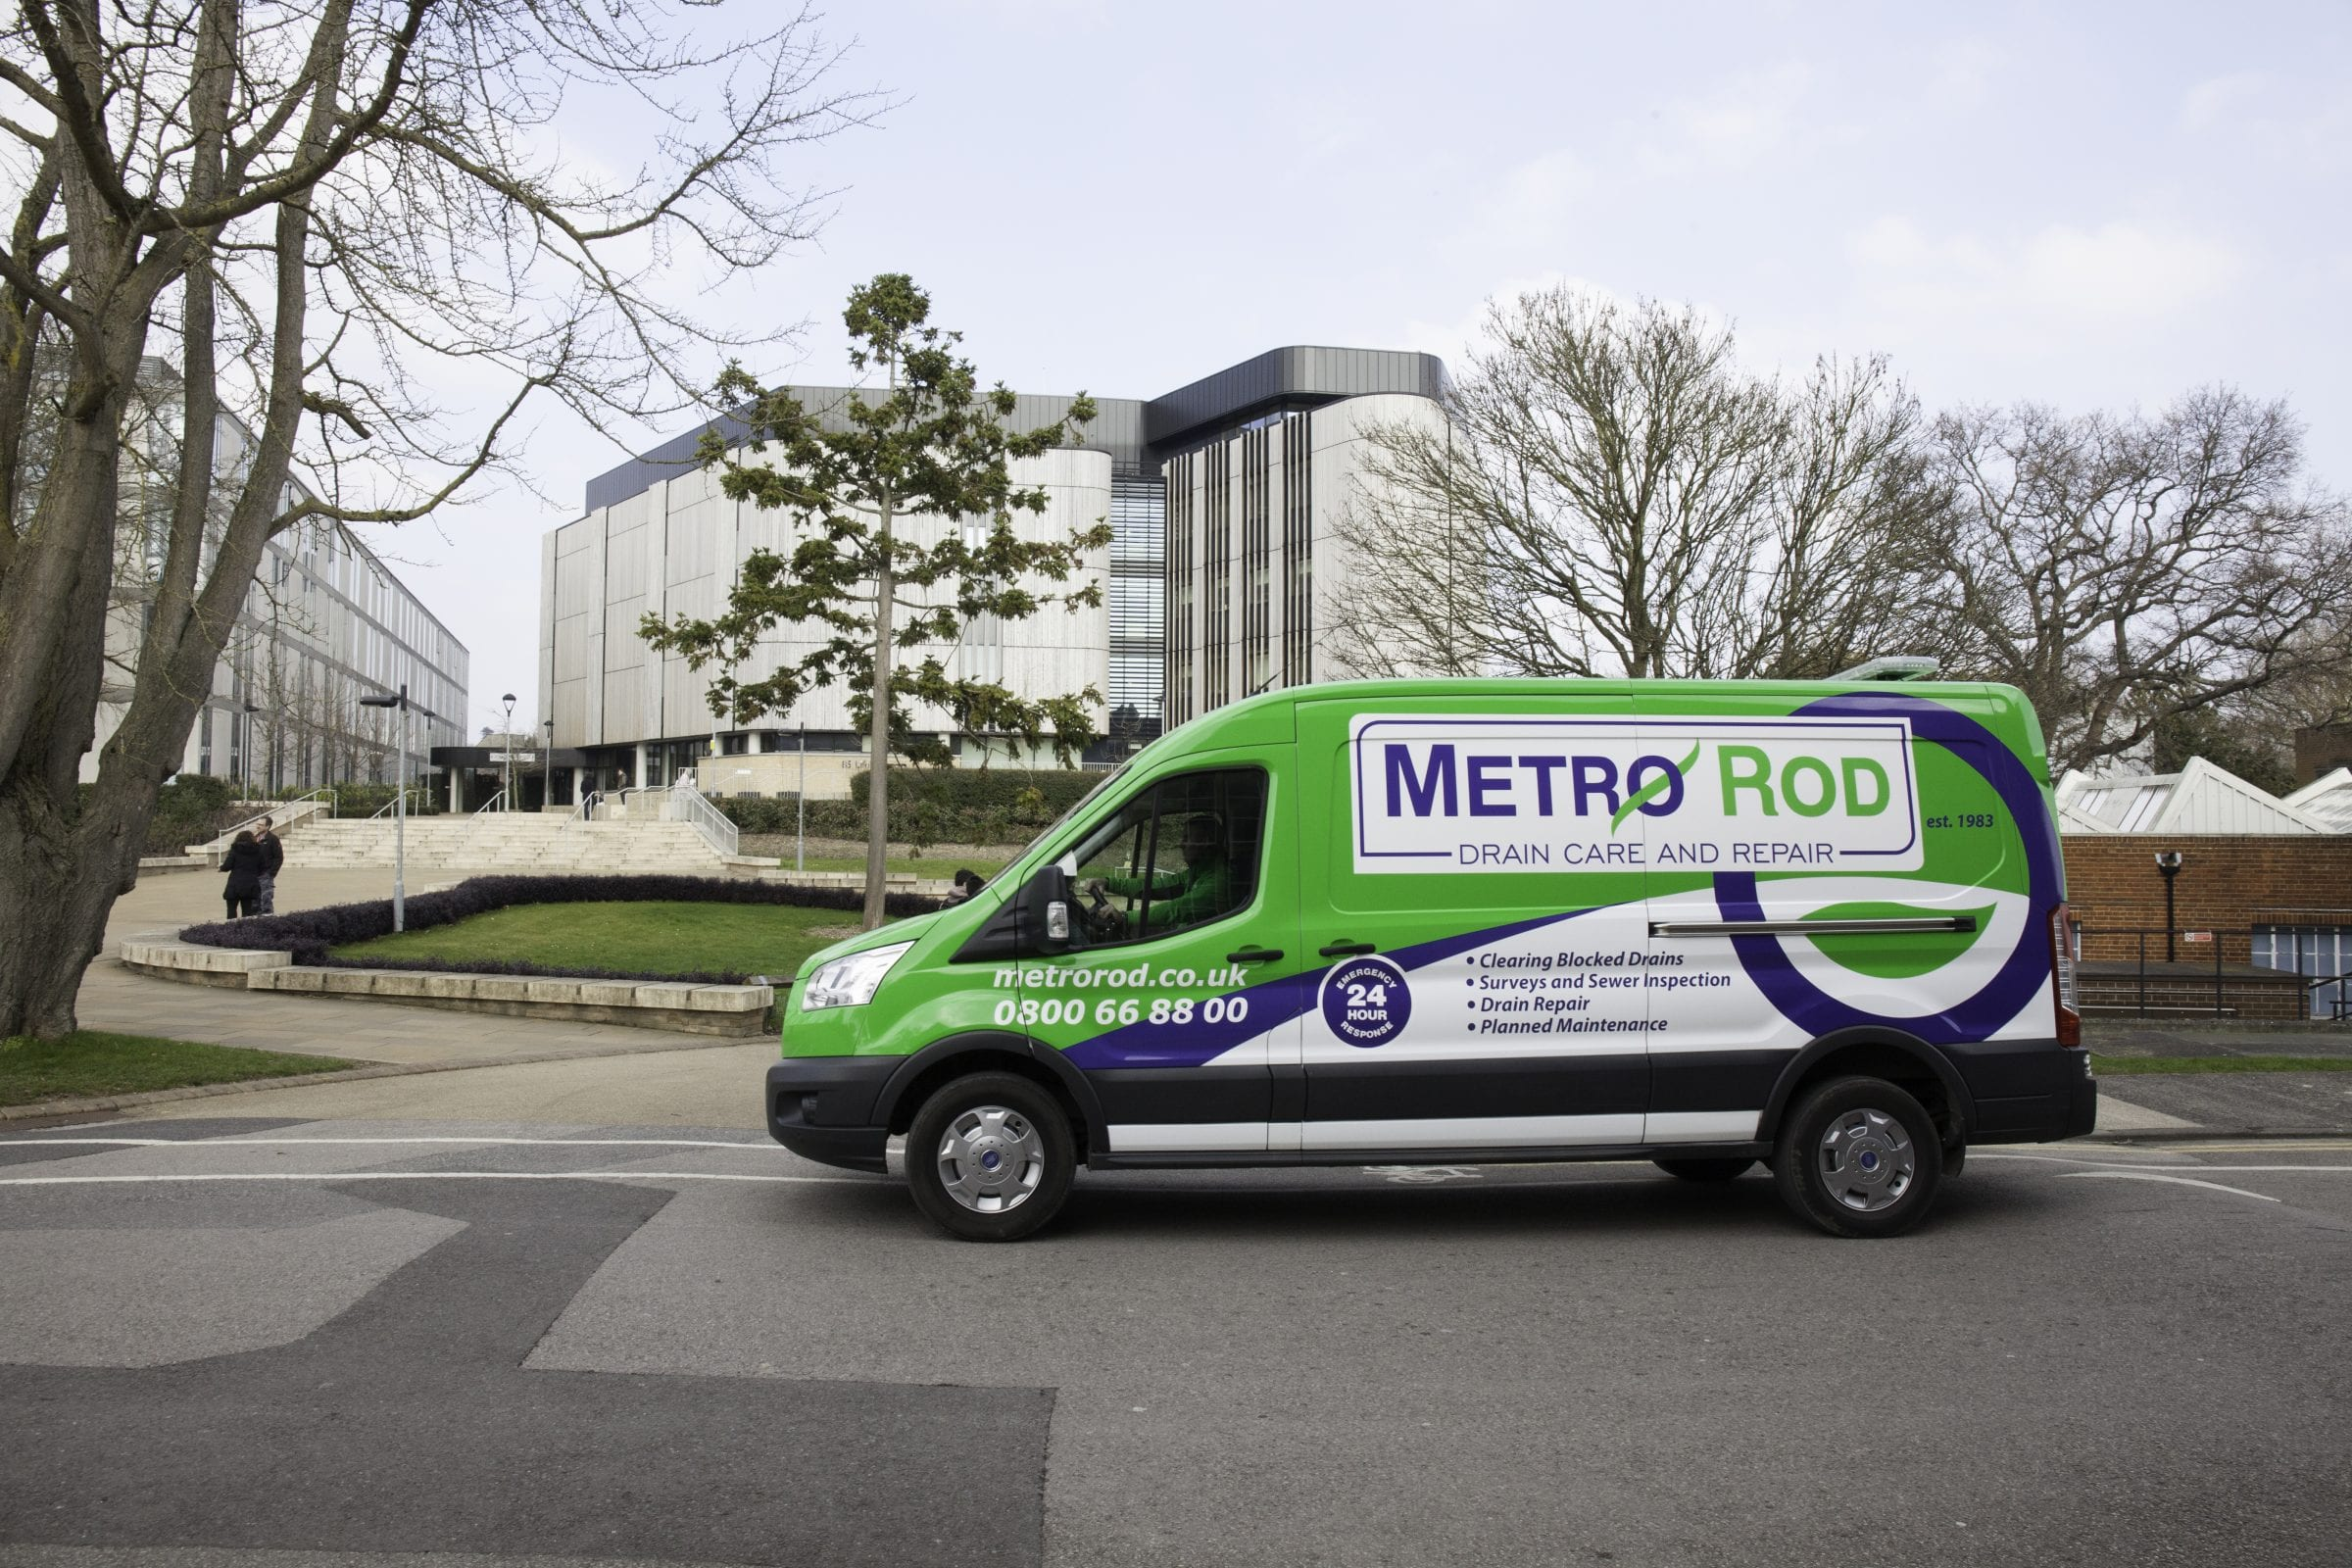 Your Local Service Centre - Metro Rod